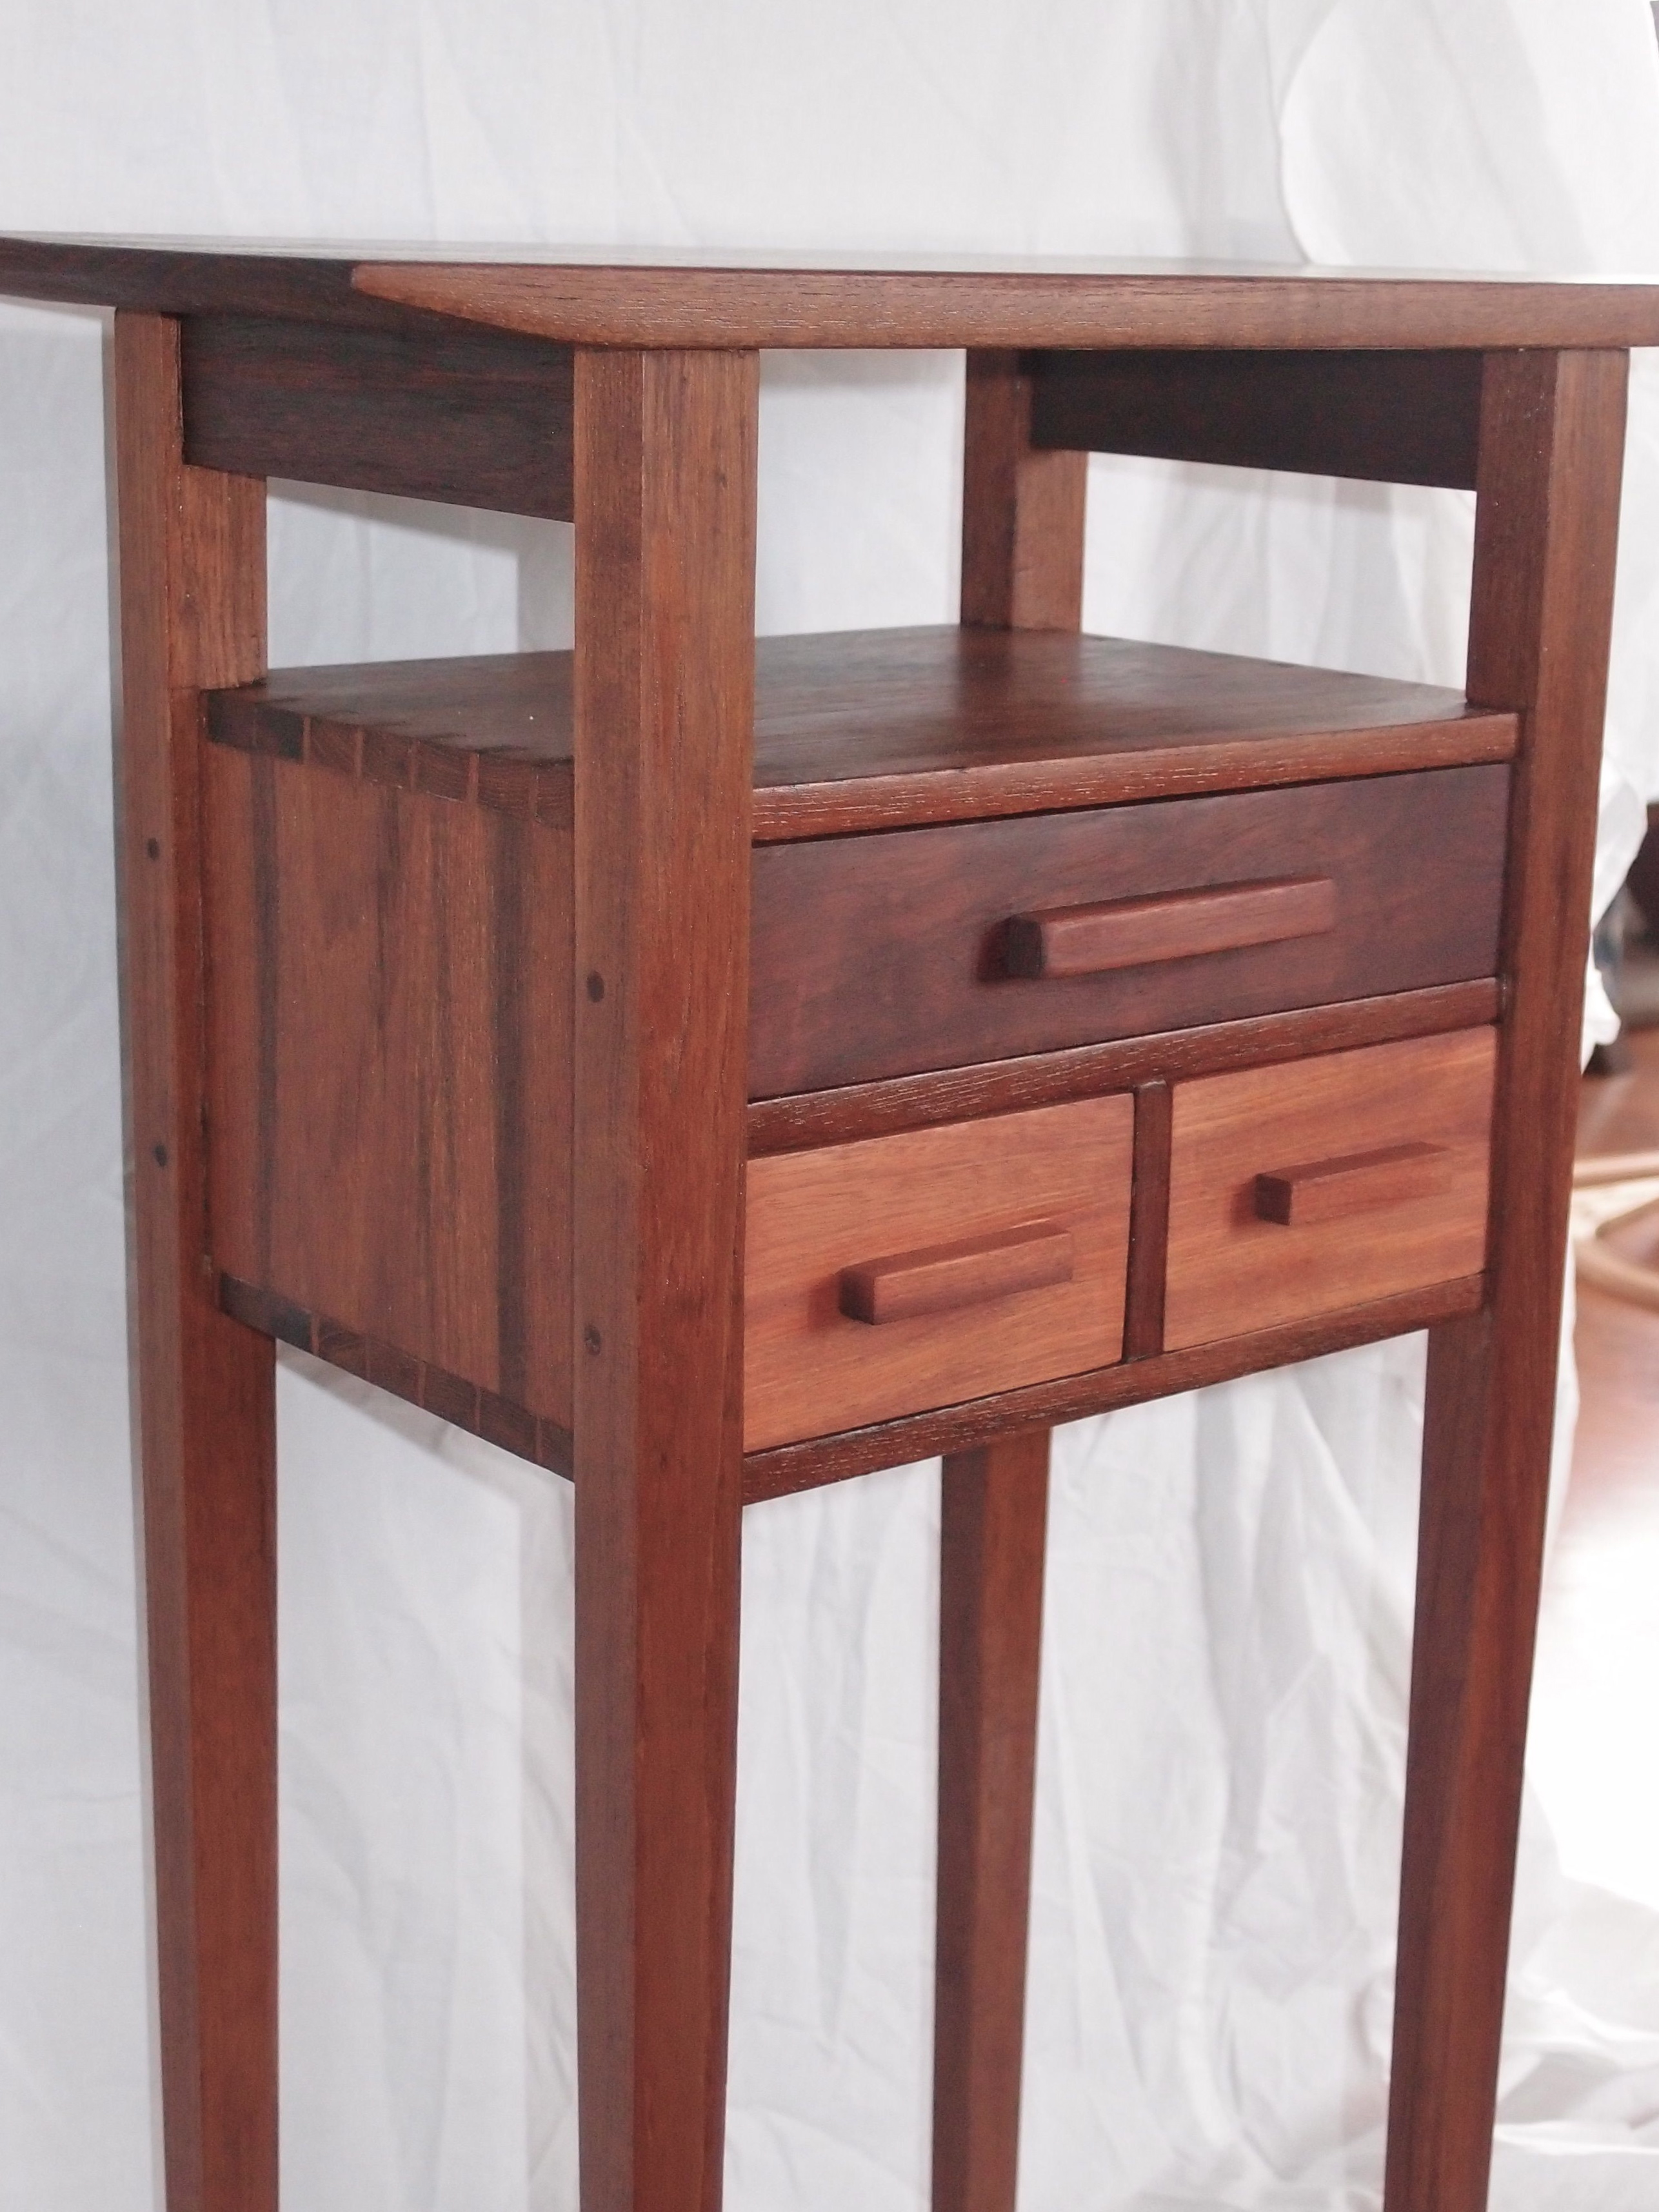 Spectacular I was thrilled to receive a letter from a reader in Burma this past week who made a version of my side table u Skinny legs and all u